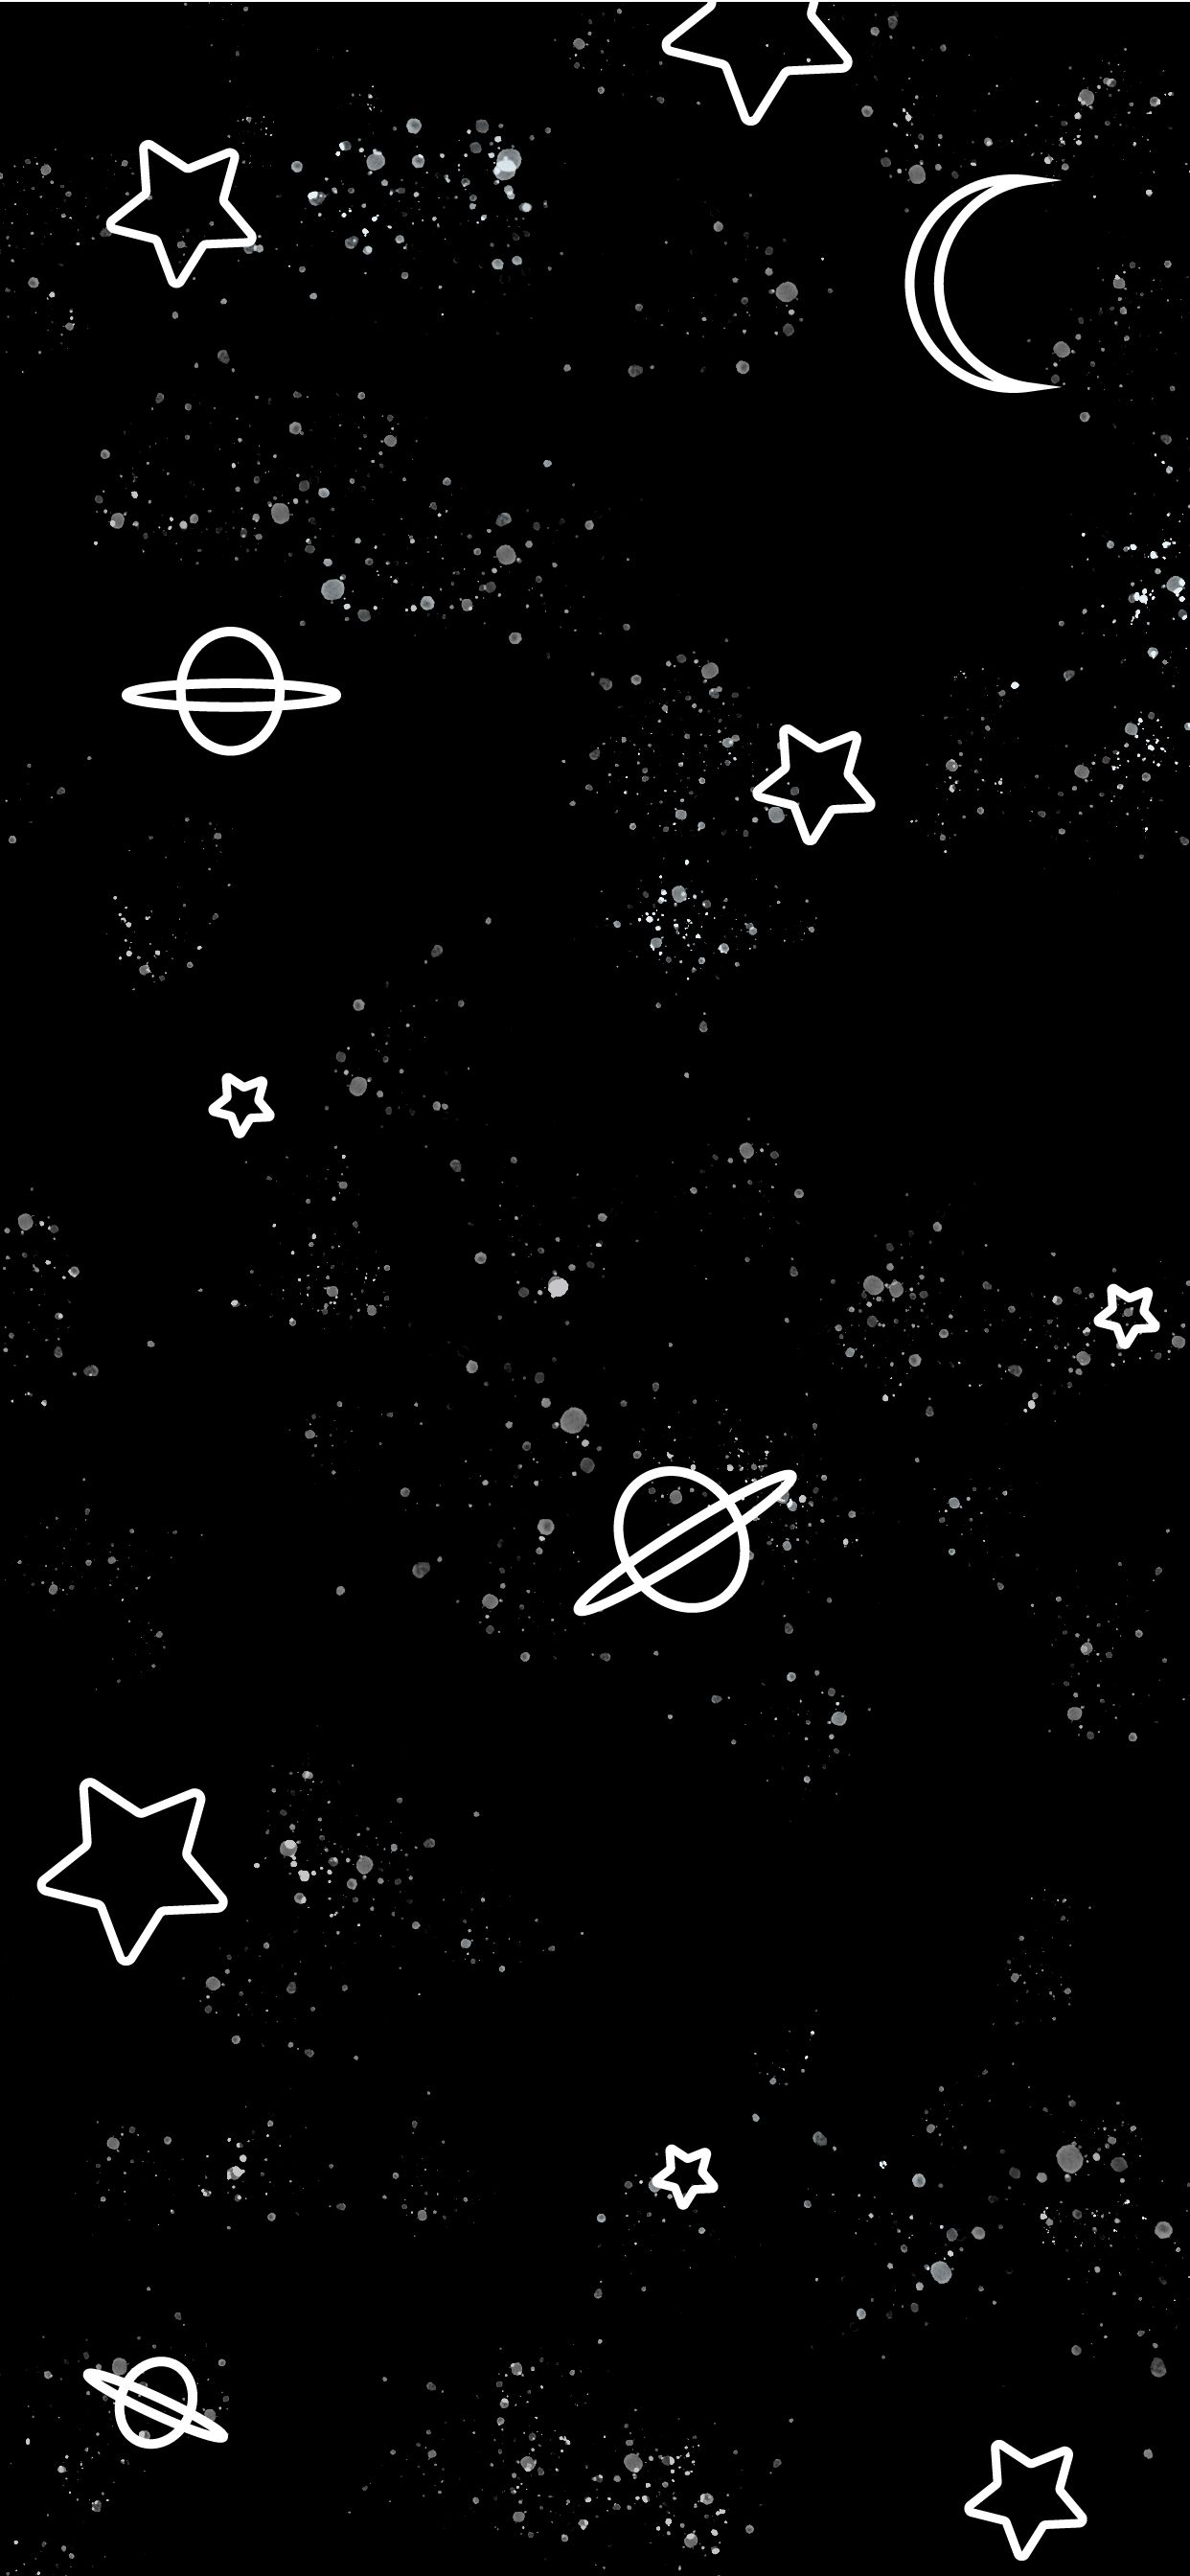 Free Outer Space Iphone Wallpapers Space Iphone Wallpaper Outer Space Wallpaper Space Phone Wallpaper